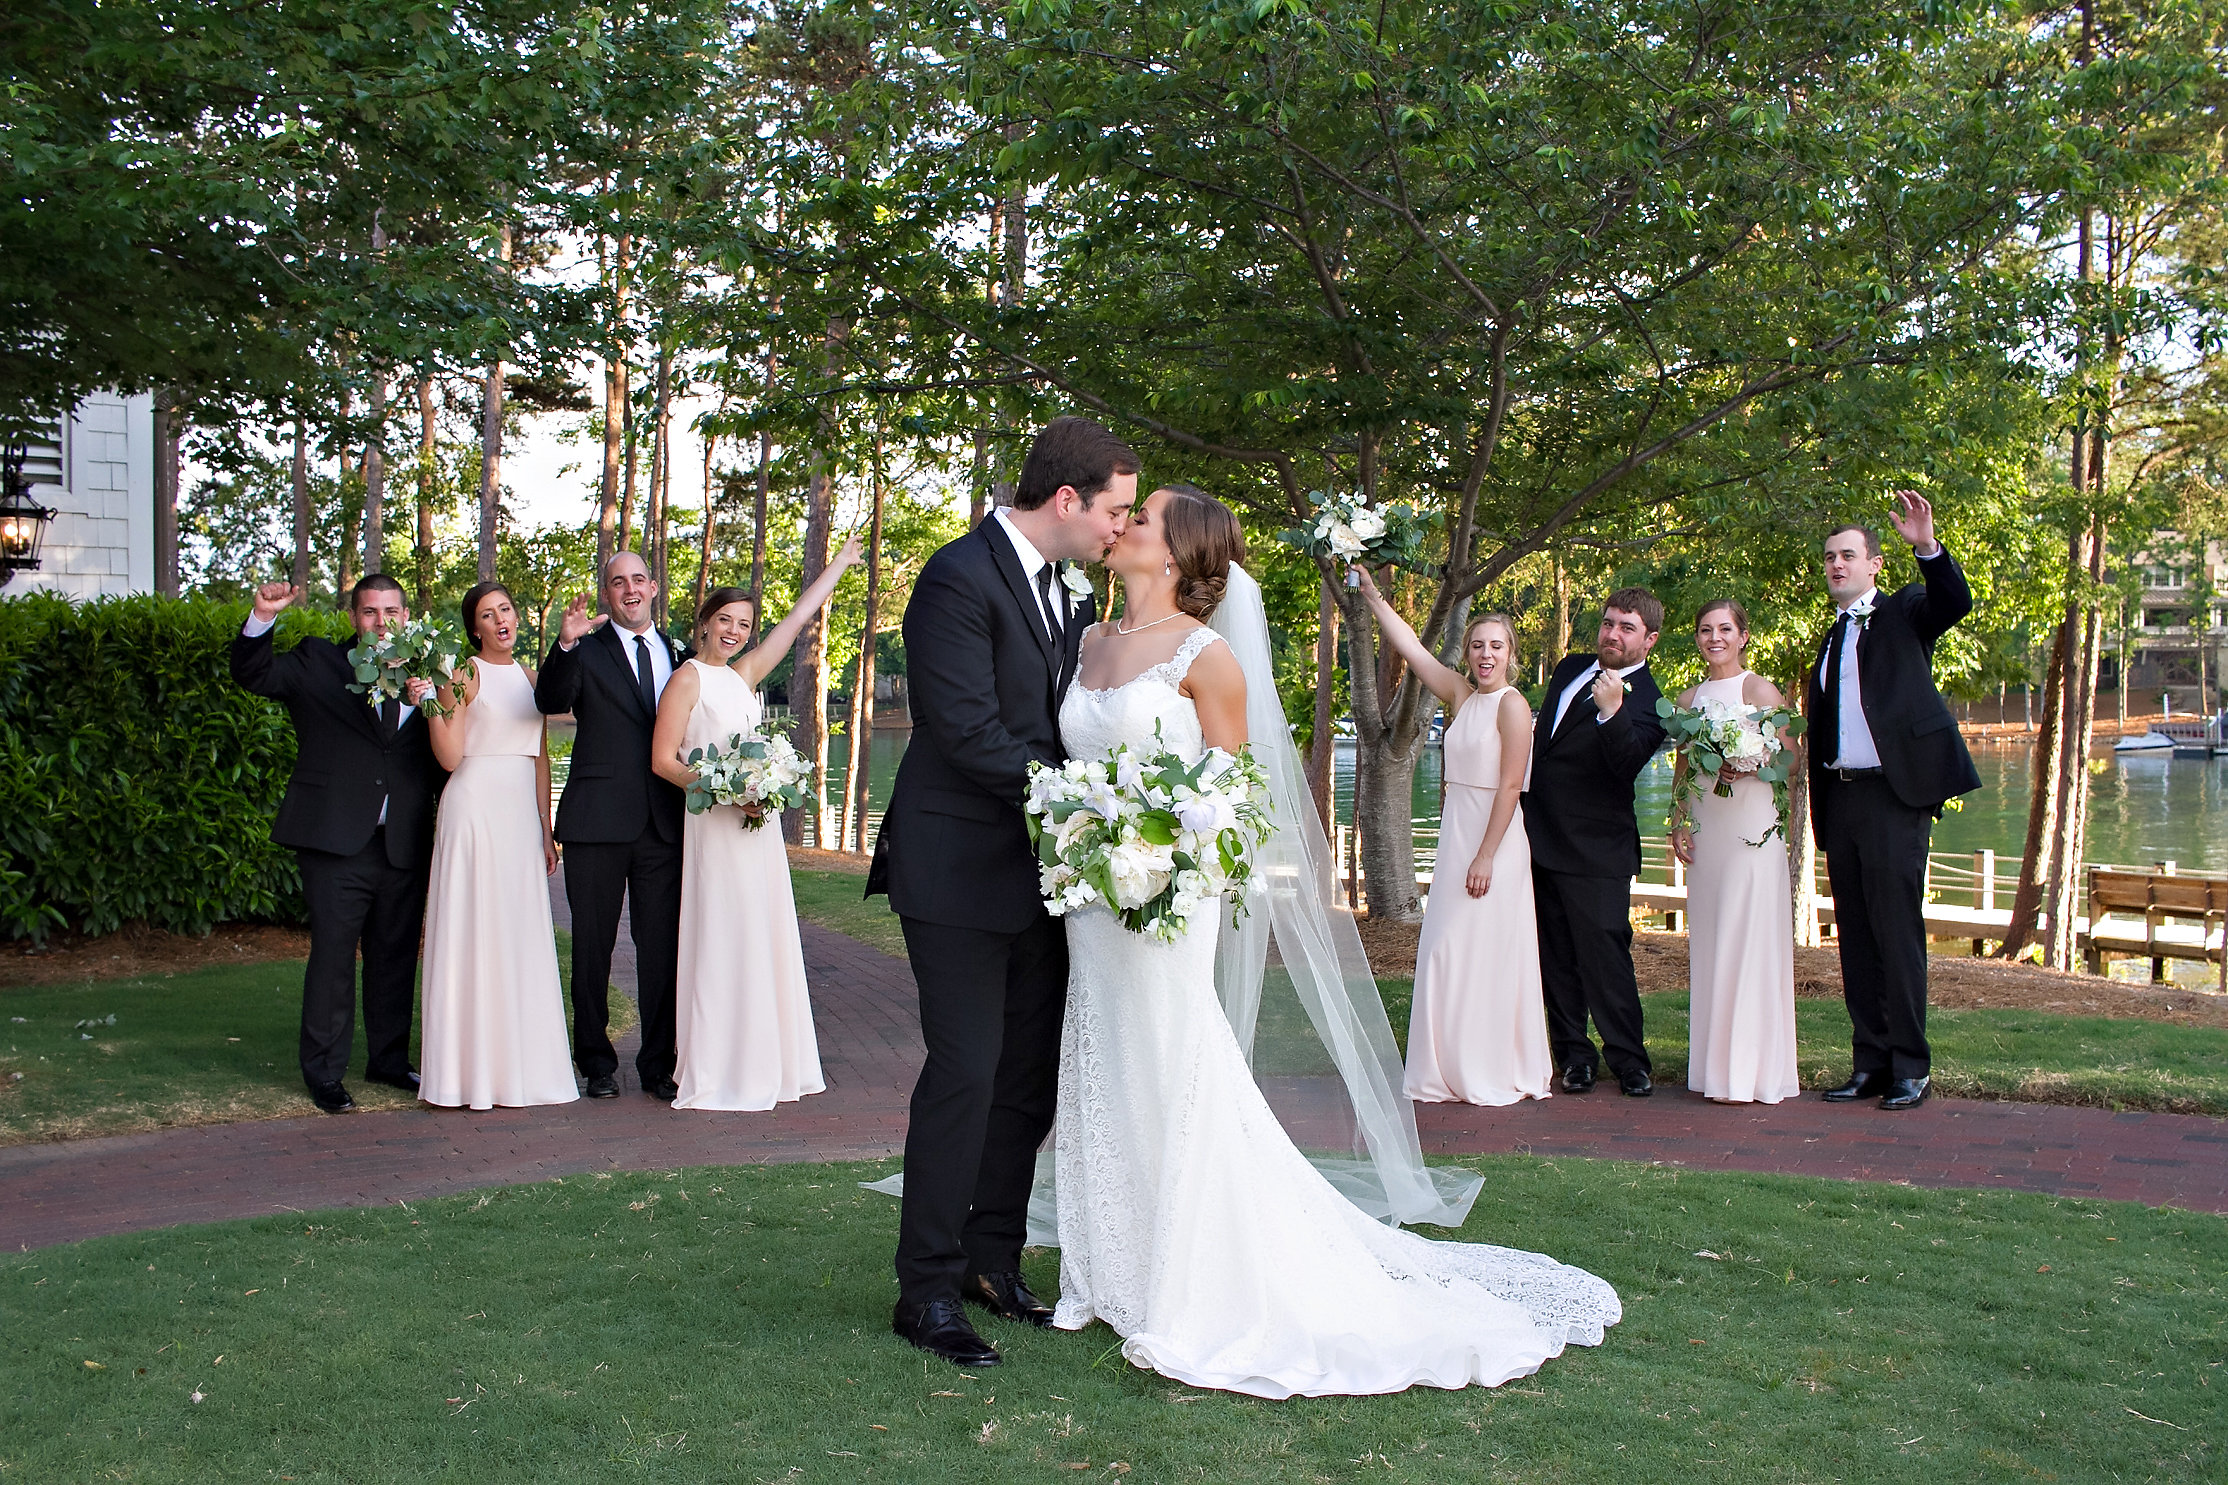 Charlotte North Carolina Wedding, Trump National Golf Course Wedding, Lakeside wedding, Blush Ivory and Greenery Wedding Design, The Graceful Host, Bridal Bouquet, Bridal Fashion, Lace Wedding Dress, Spring Wedding, Elegant Wedding, BHLDN, Blush Bridesmaid Dress, Bridal Party Fashion